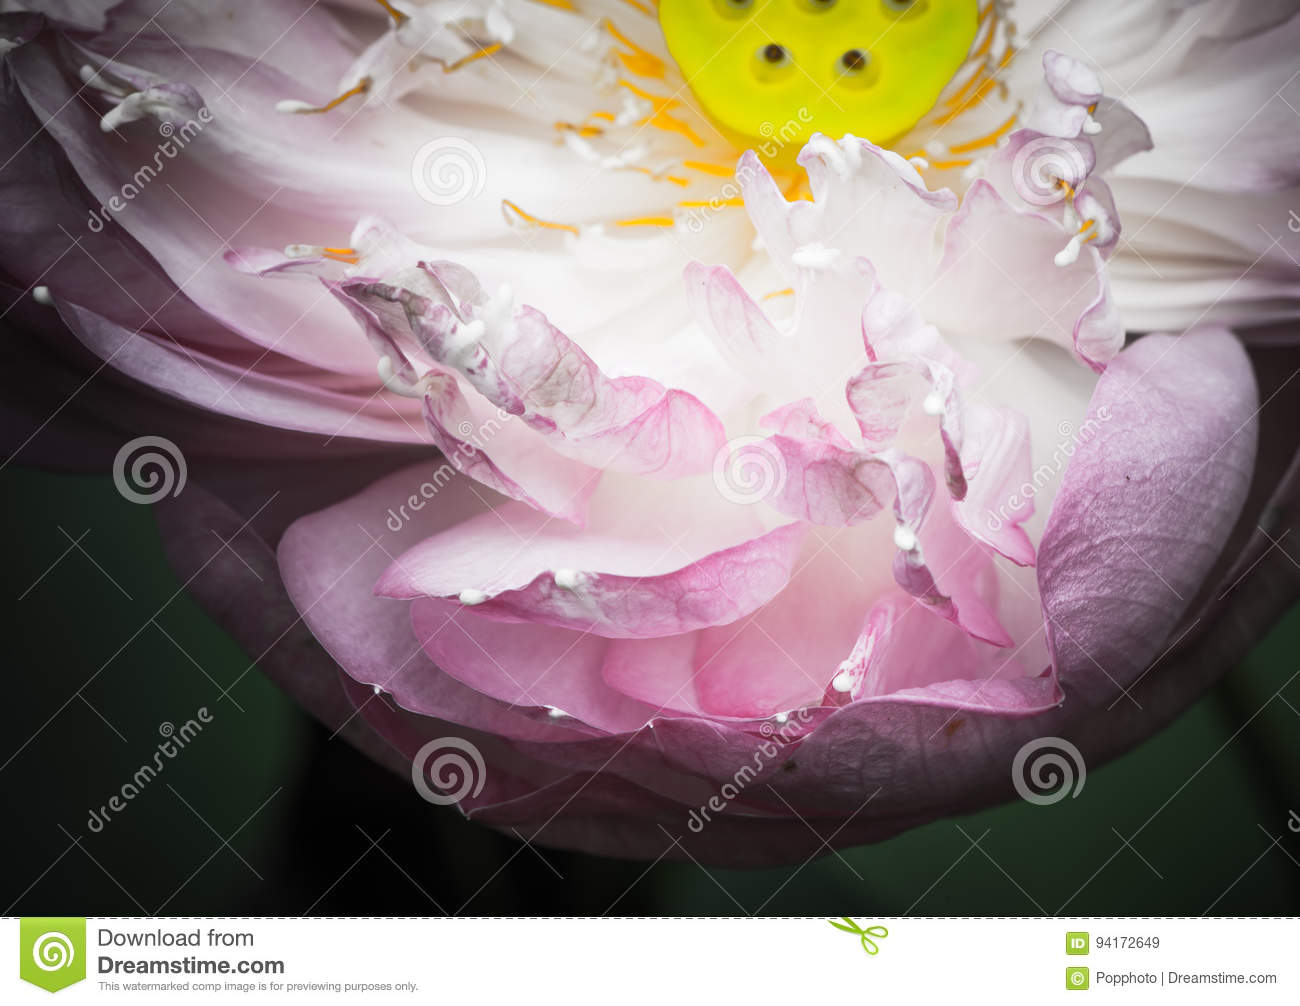 A half of open lotus flower stock image image of aquatic petal a half of open lotus flower izmirmasajfo